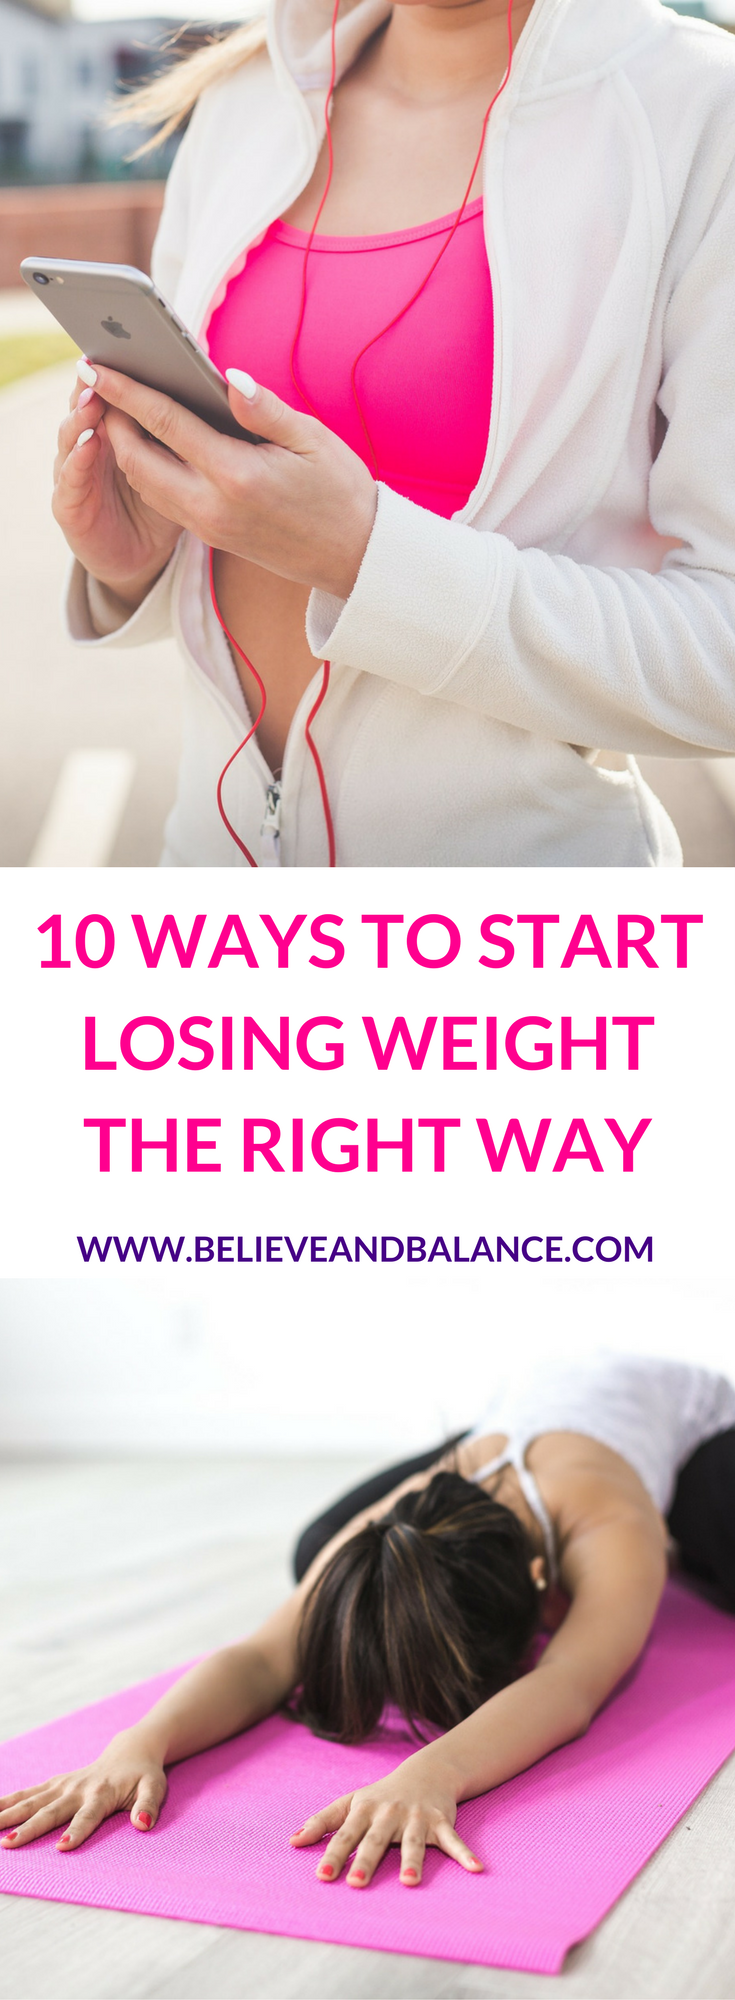 10 WAYS TO START LOSING WEIGHT THE RIGHT WAY.png